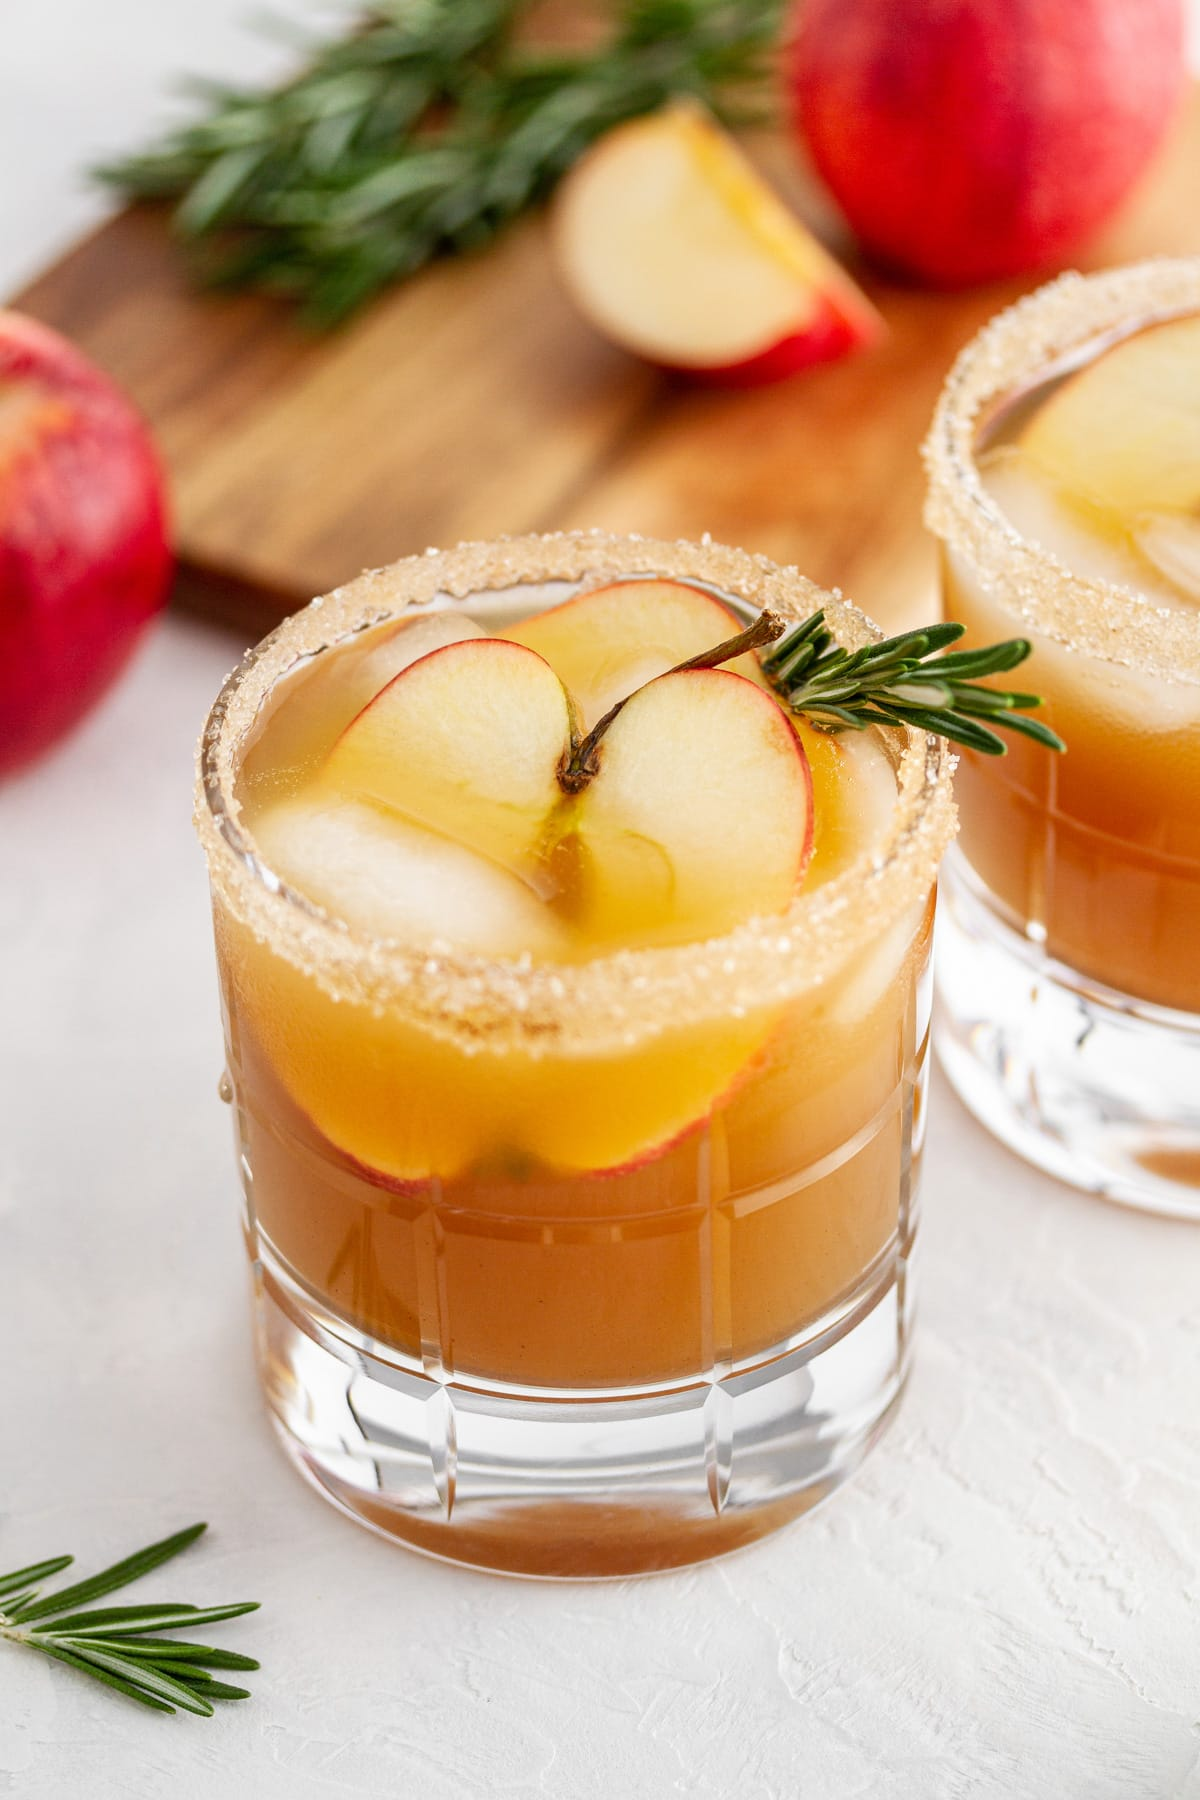 harvest apple ginger smash in a glass on a surface